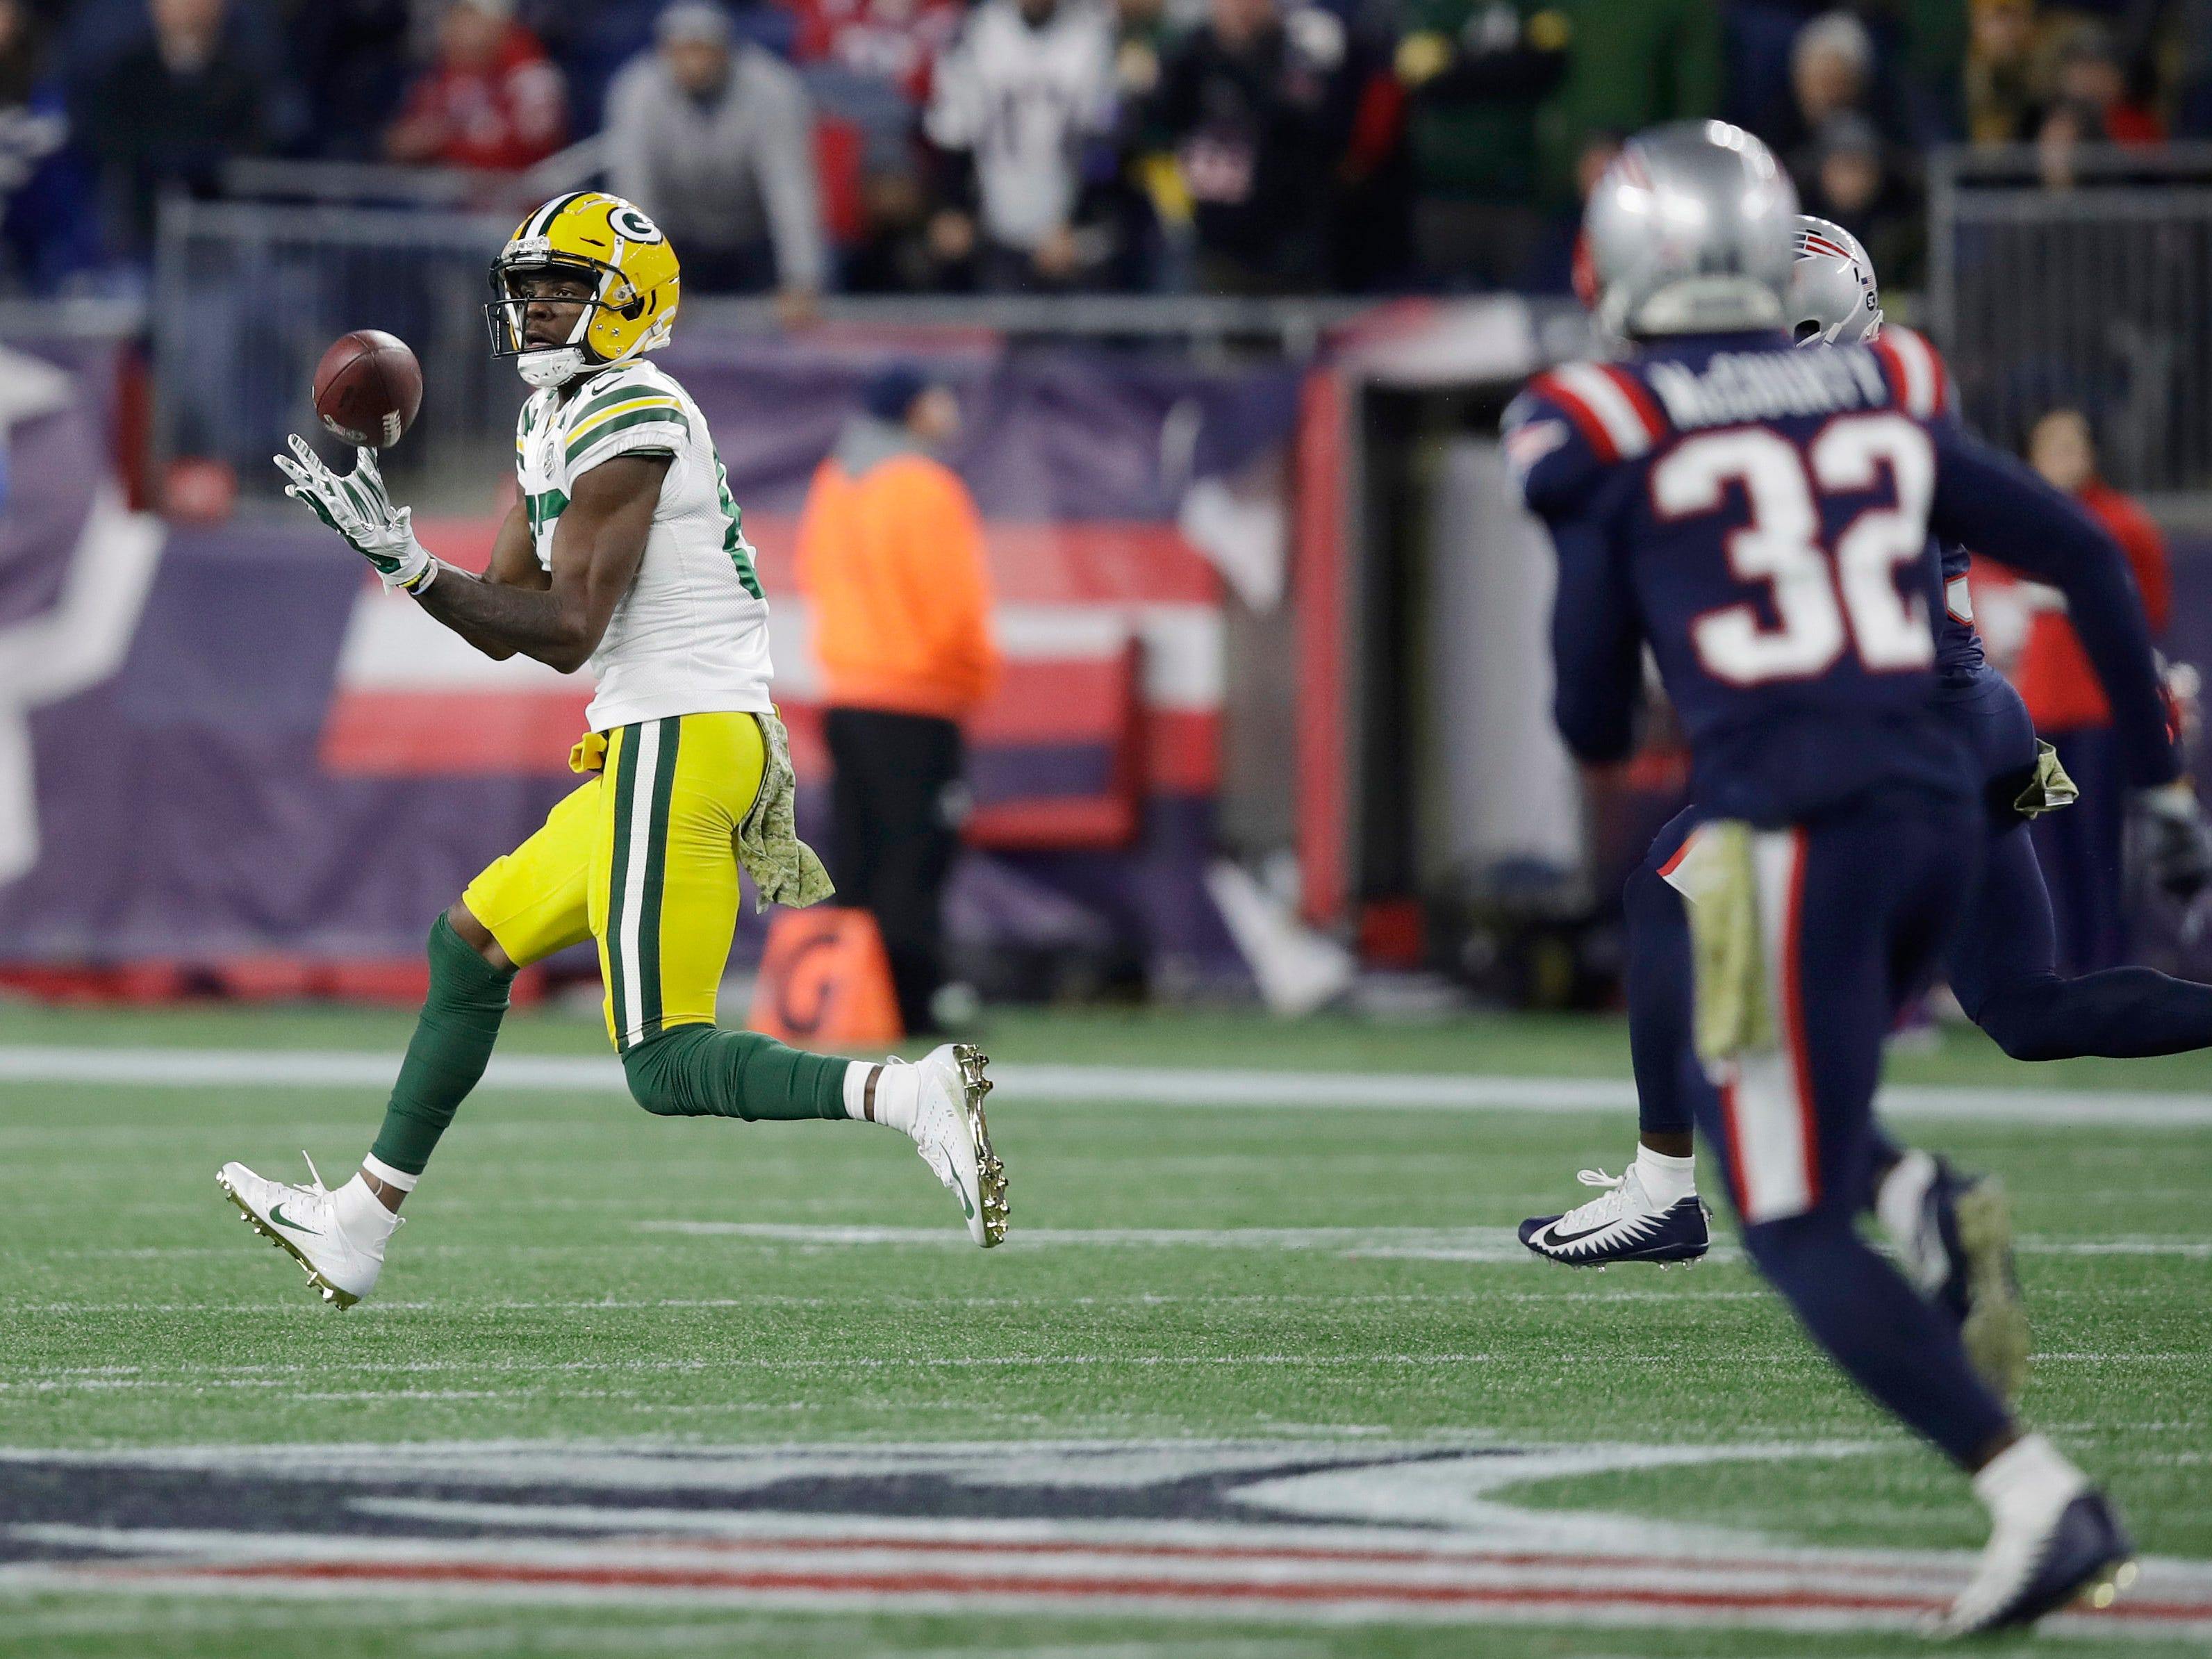 Green Bay Packers wide receiver Marquez Valdes-Scantling, left, catches a pass in front of New England Patriots defensive back Devin McCourty (32) during the second half of an NFL football game, Sunday, Nov. 4, 2018, in Foxborough, Mass. (AP Photo/Charles Krupa)